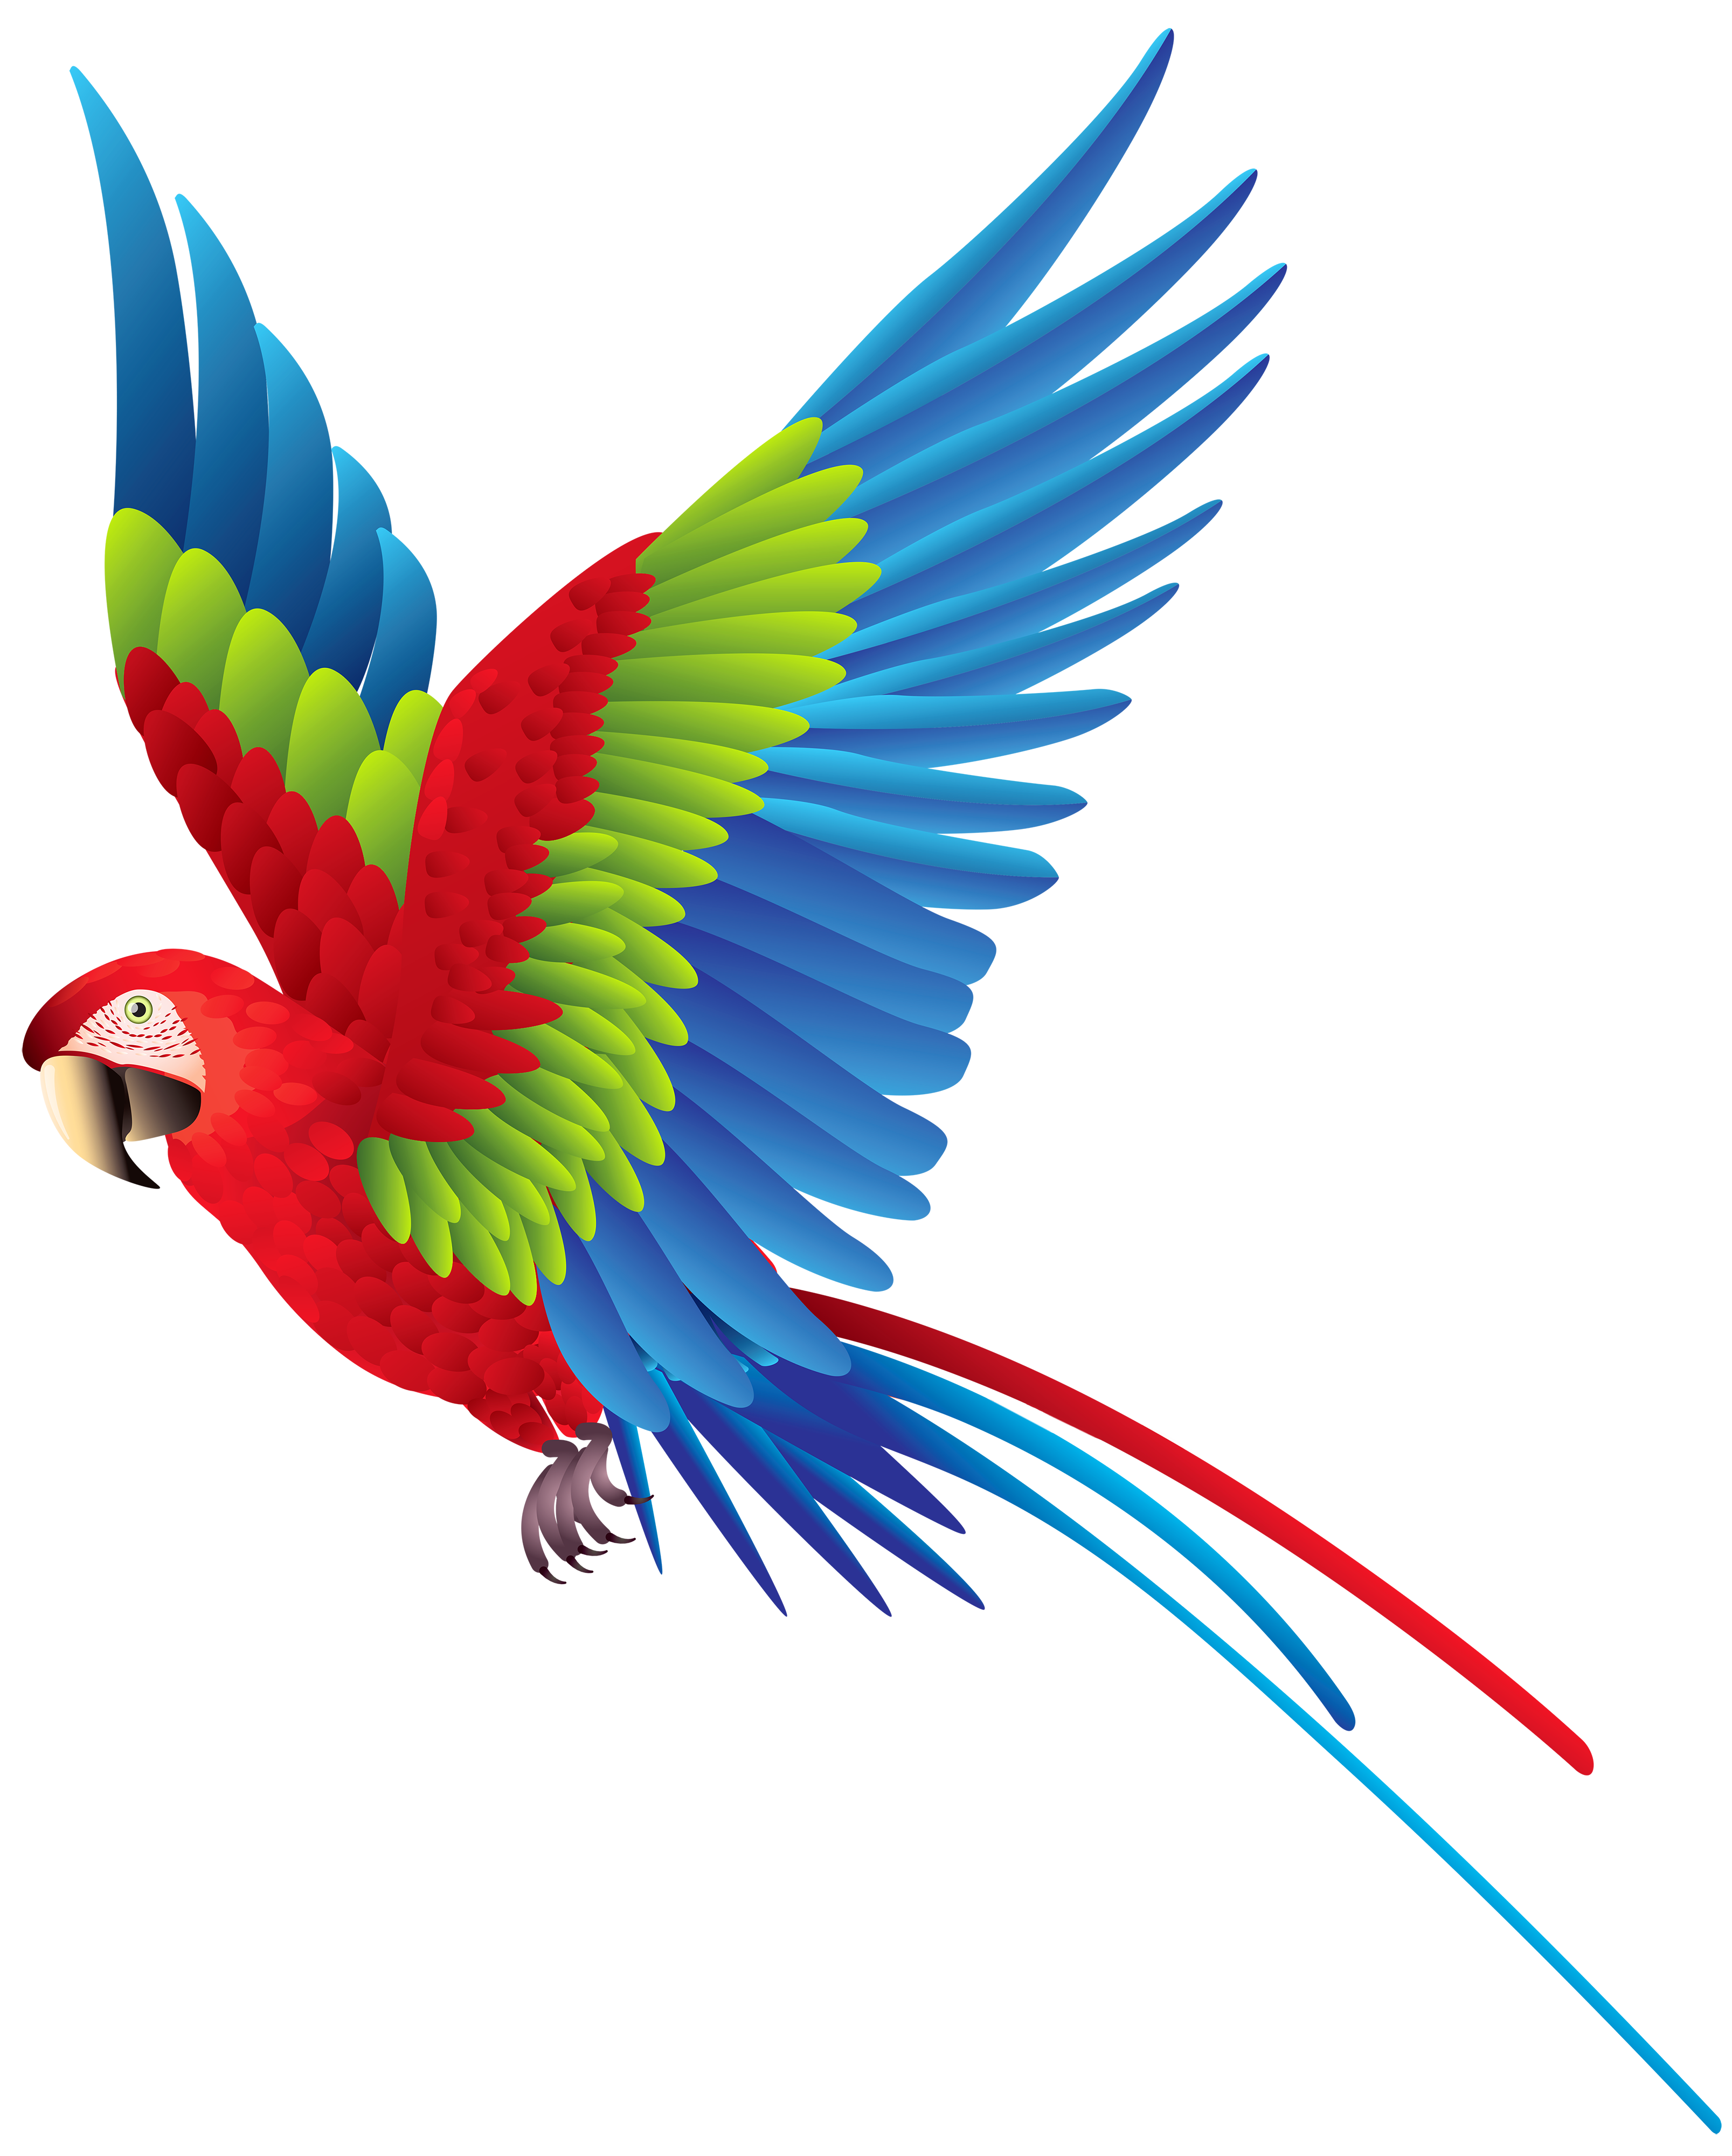 Parrot Png Image PNG Image